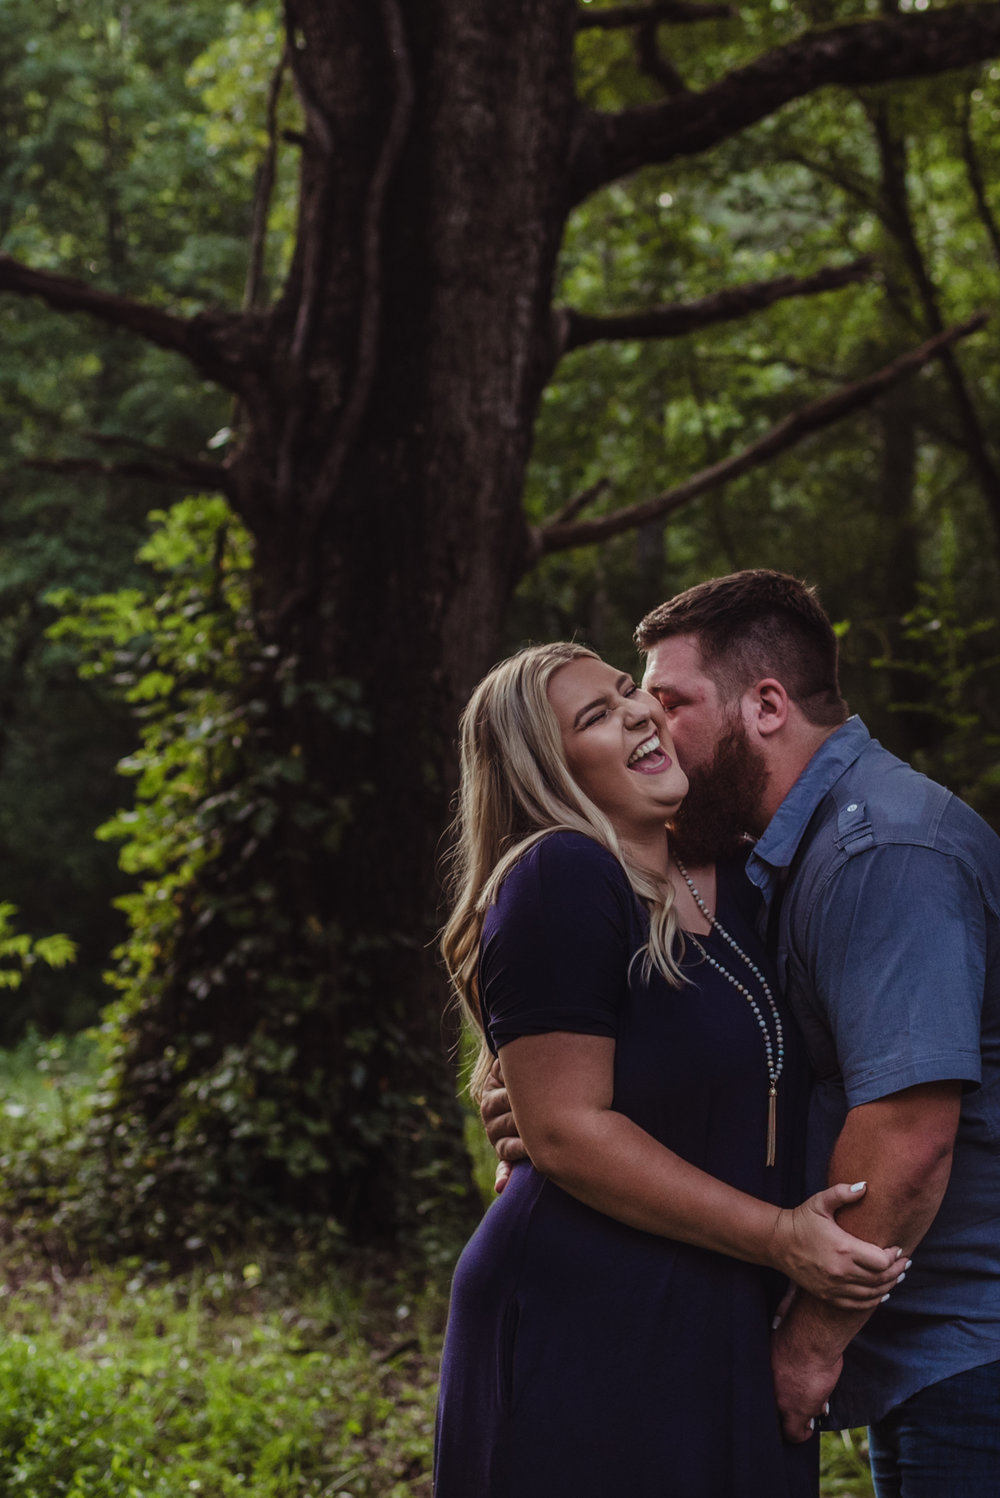 The future bride and groom laugh together in the woods for their engagement pictures with Rose Trail Images.